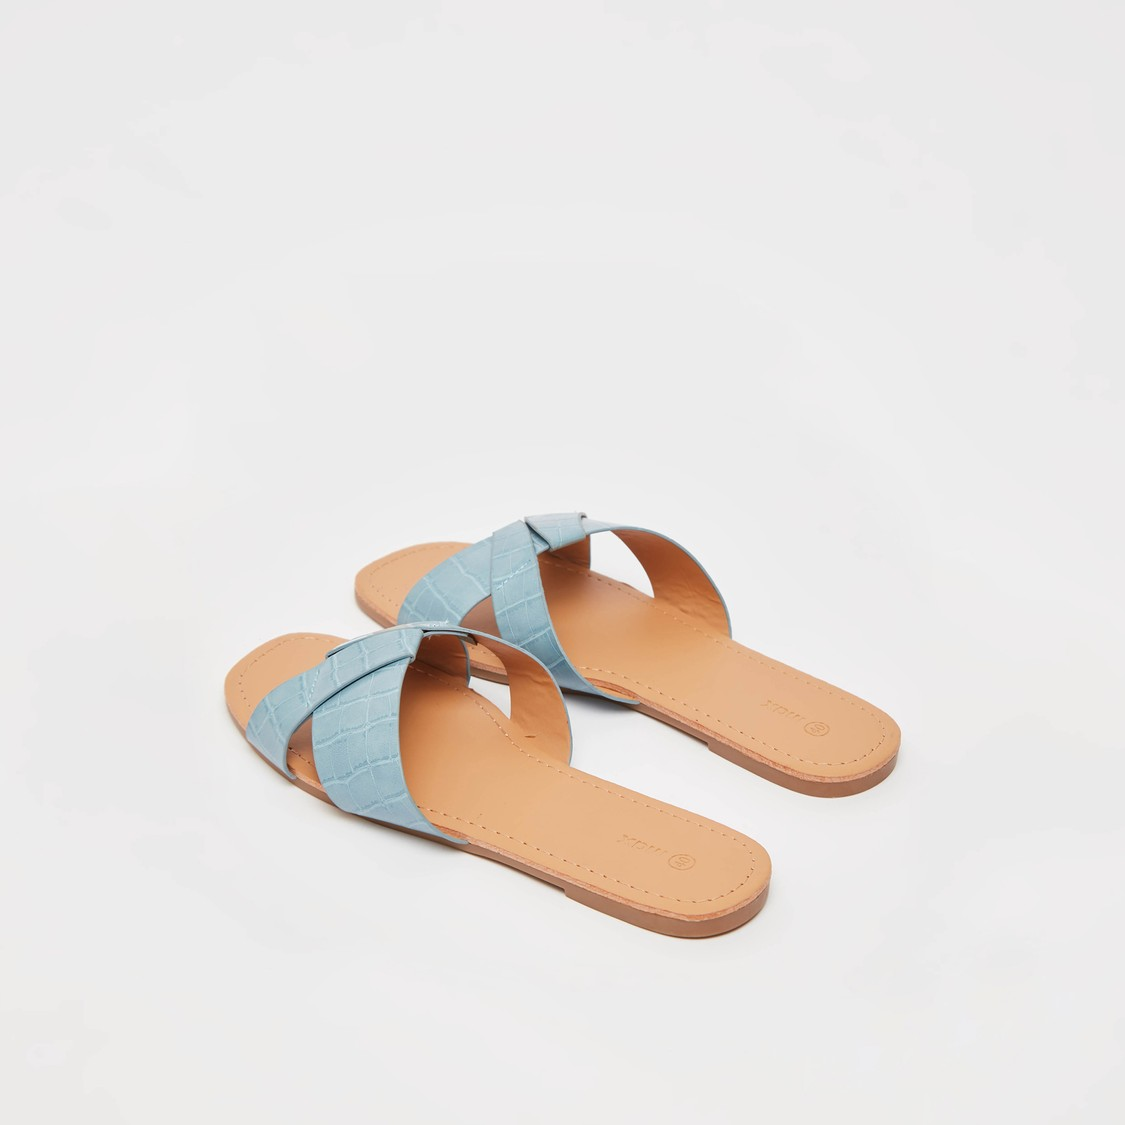 Slip-On Sandals with Reptilian Textured Criss Cross Straps